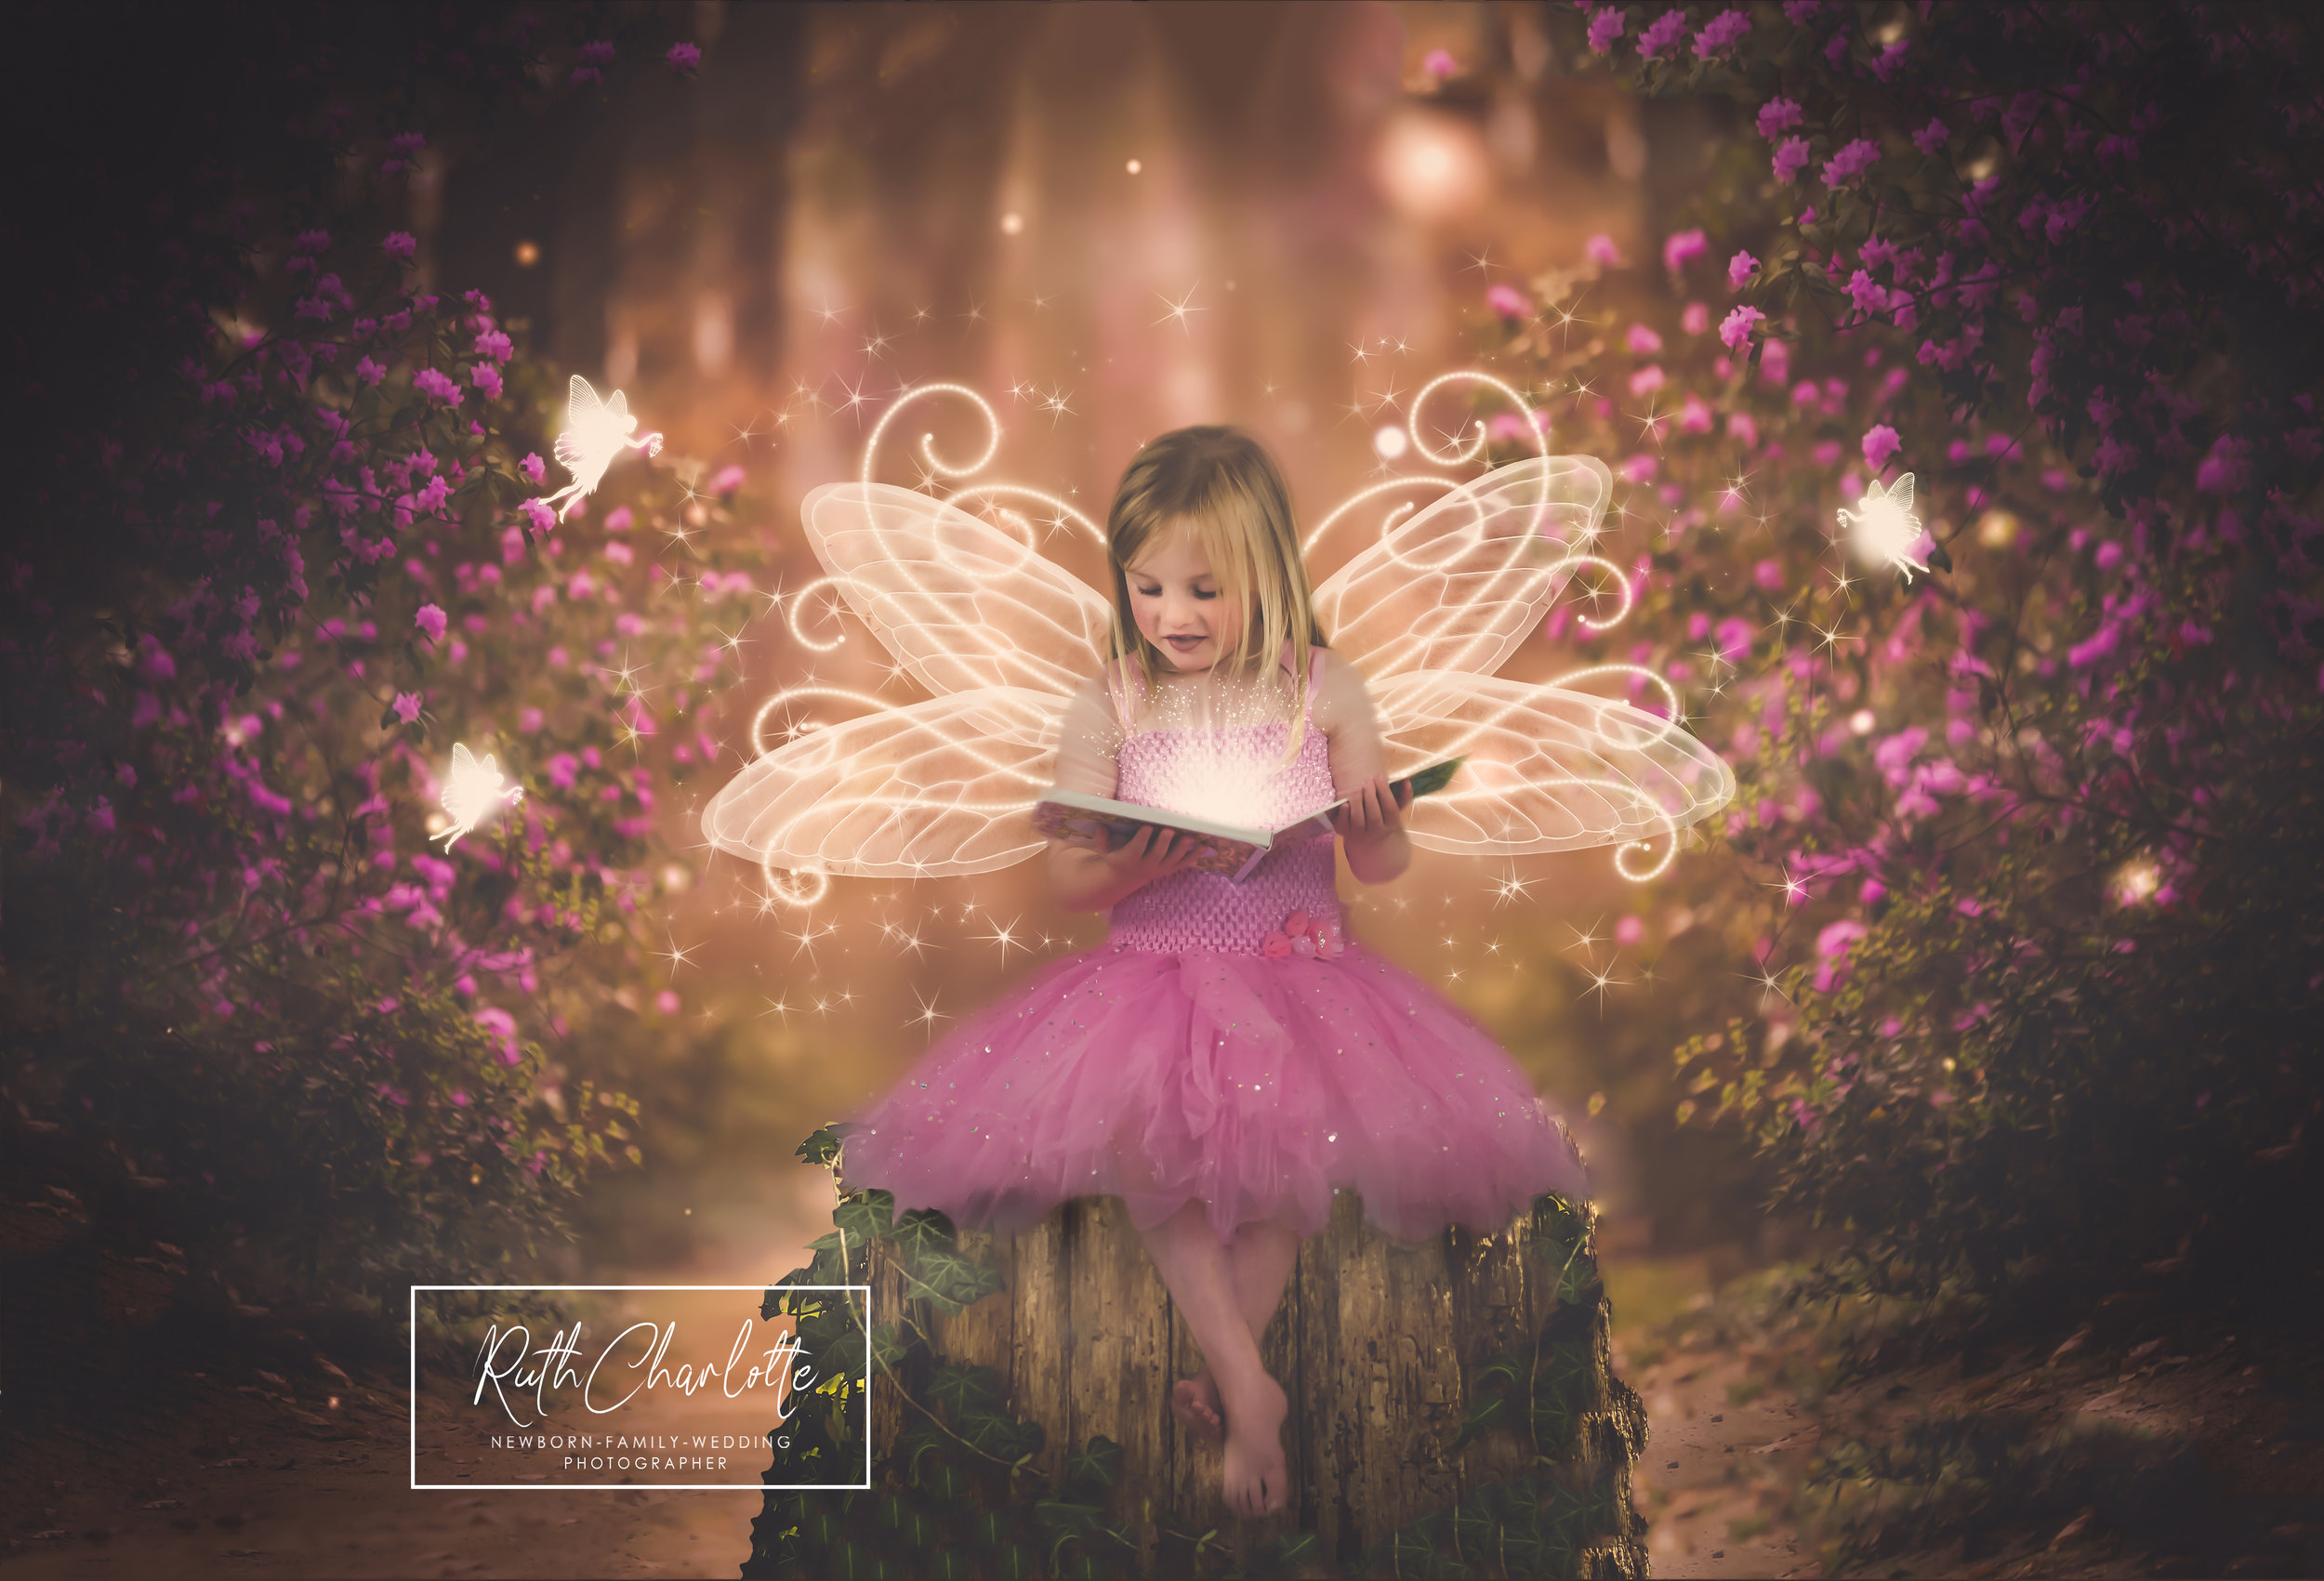 FAIRY IN THE FOREST READING A BOOK AYRSHIRE PHOTOGRAPHER